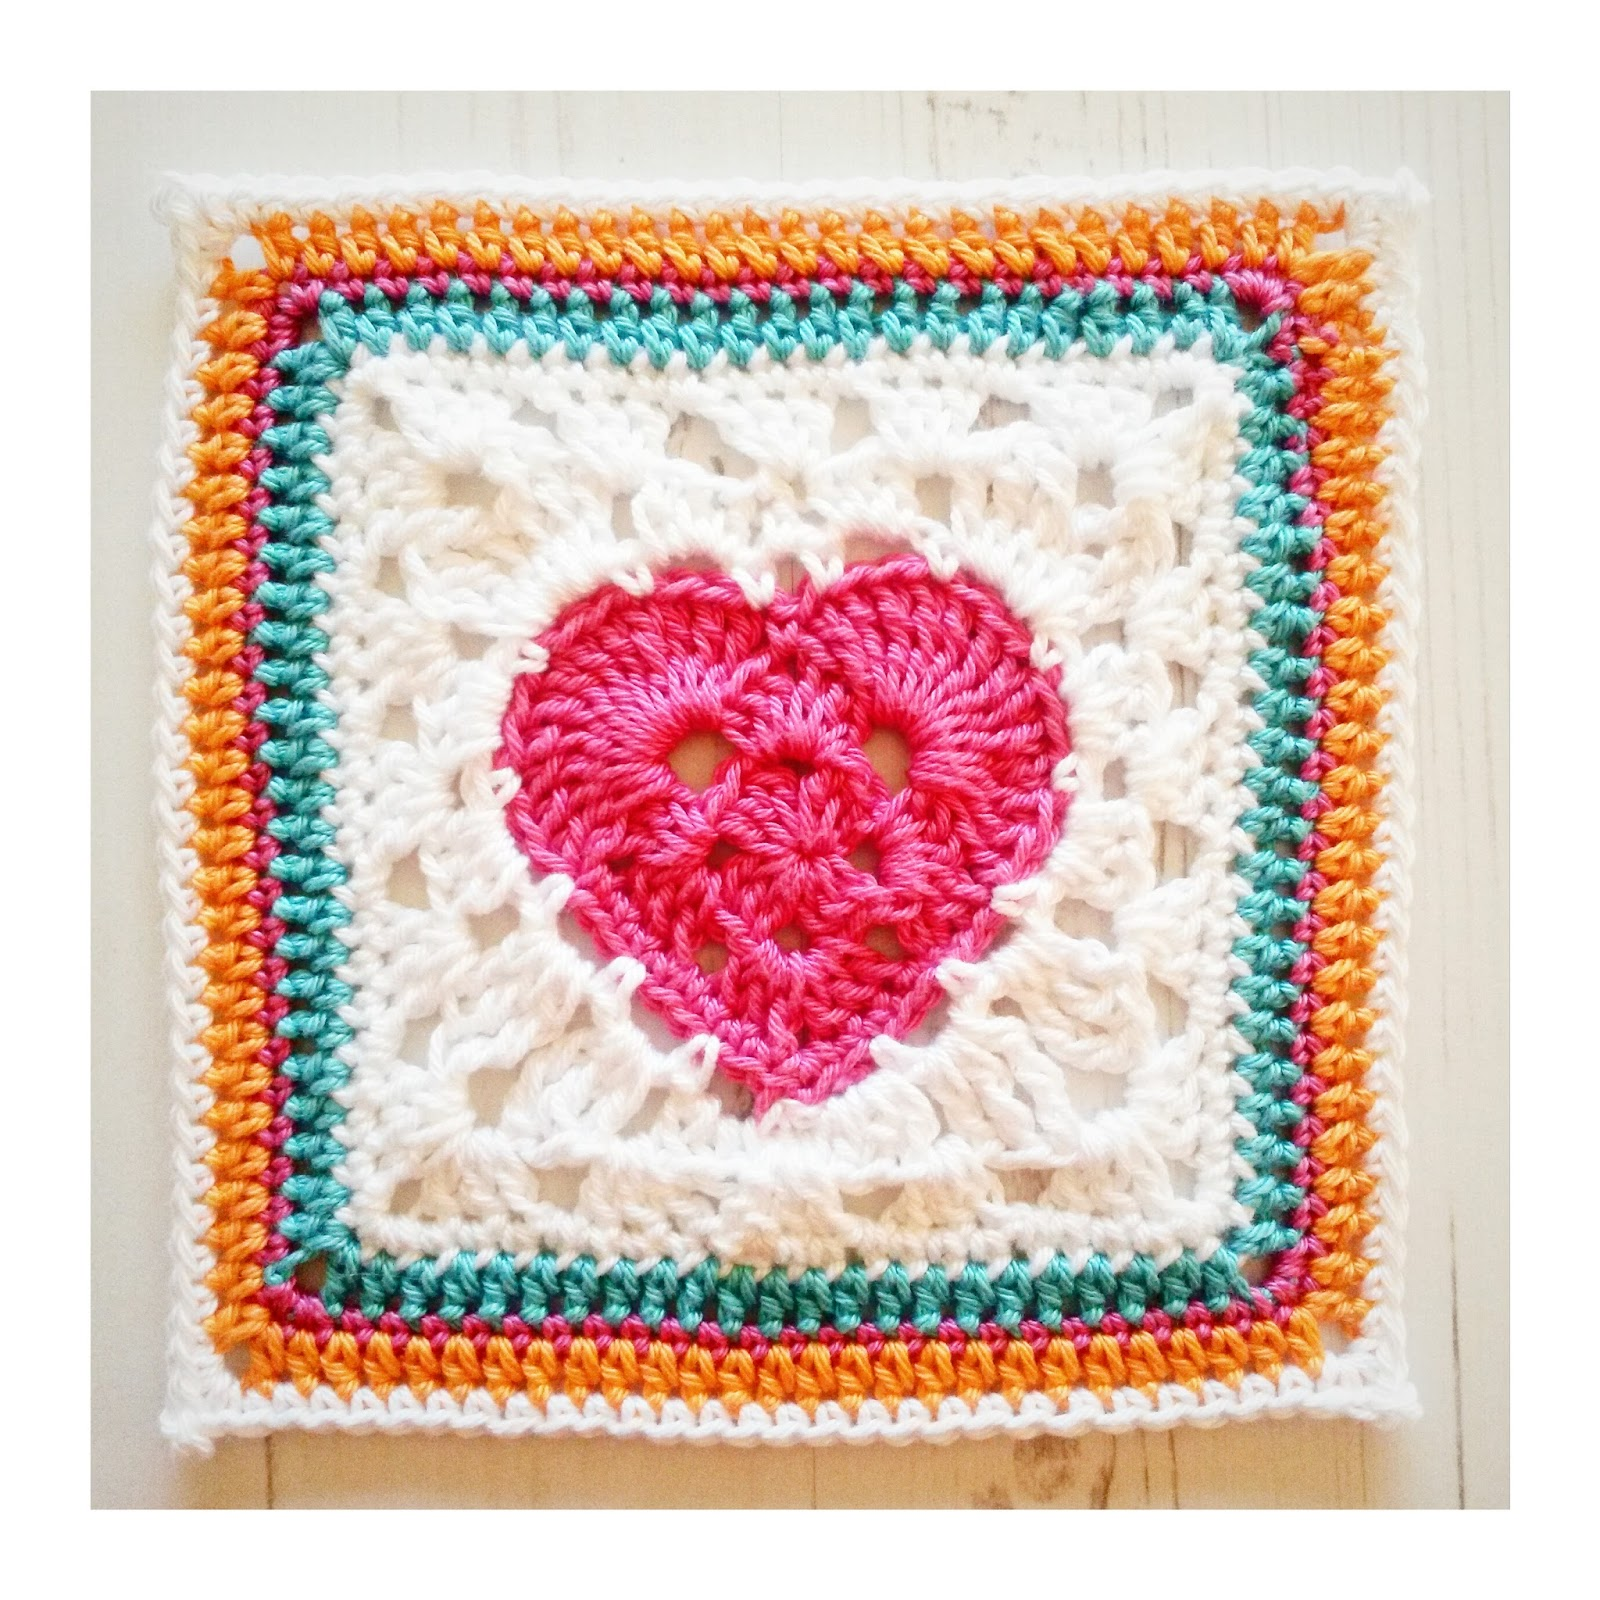 Crochet Granny Square Heart Patterns : Crochet Tea Party: Granny Heart Square